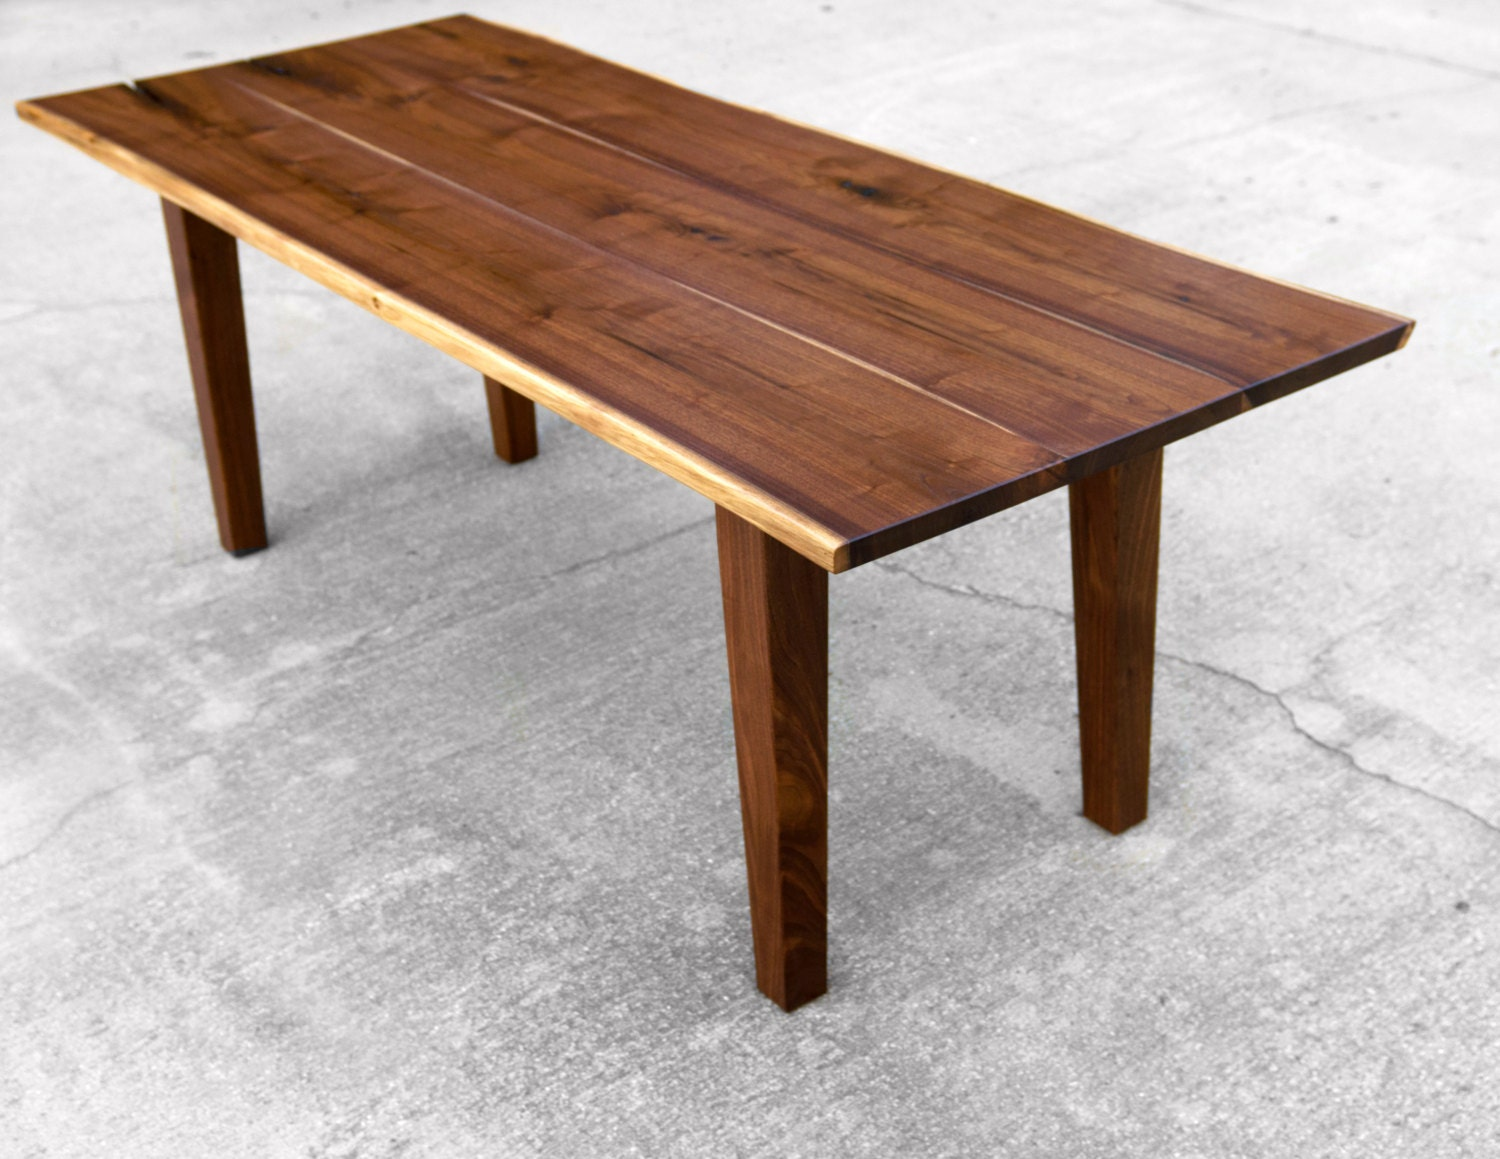 Walnut live edge dining table with tapered legs nakashima for One leg dining table